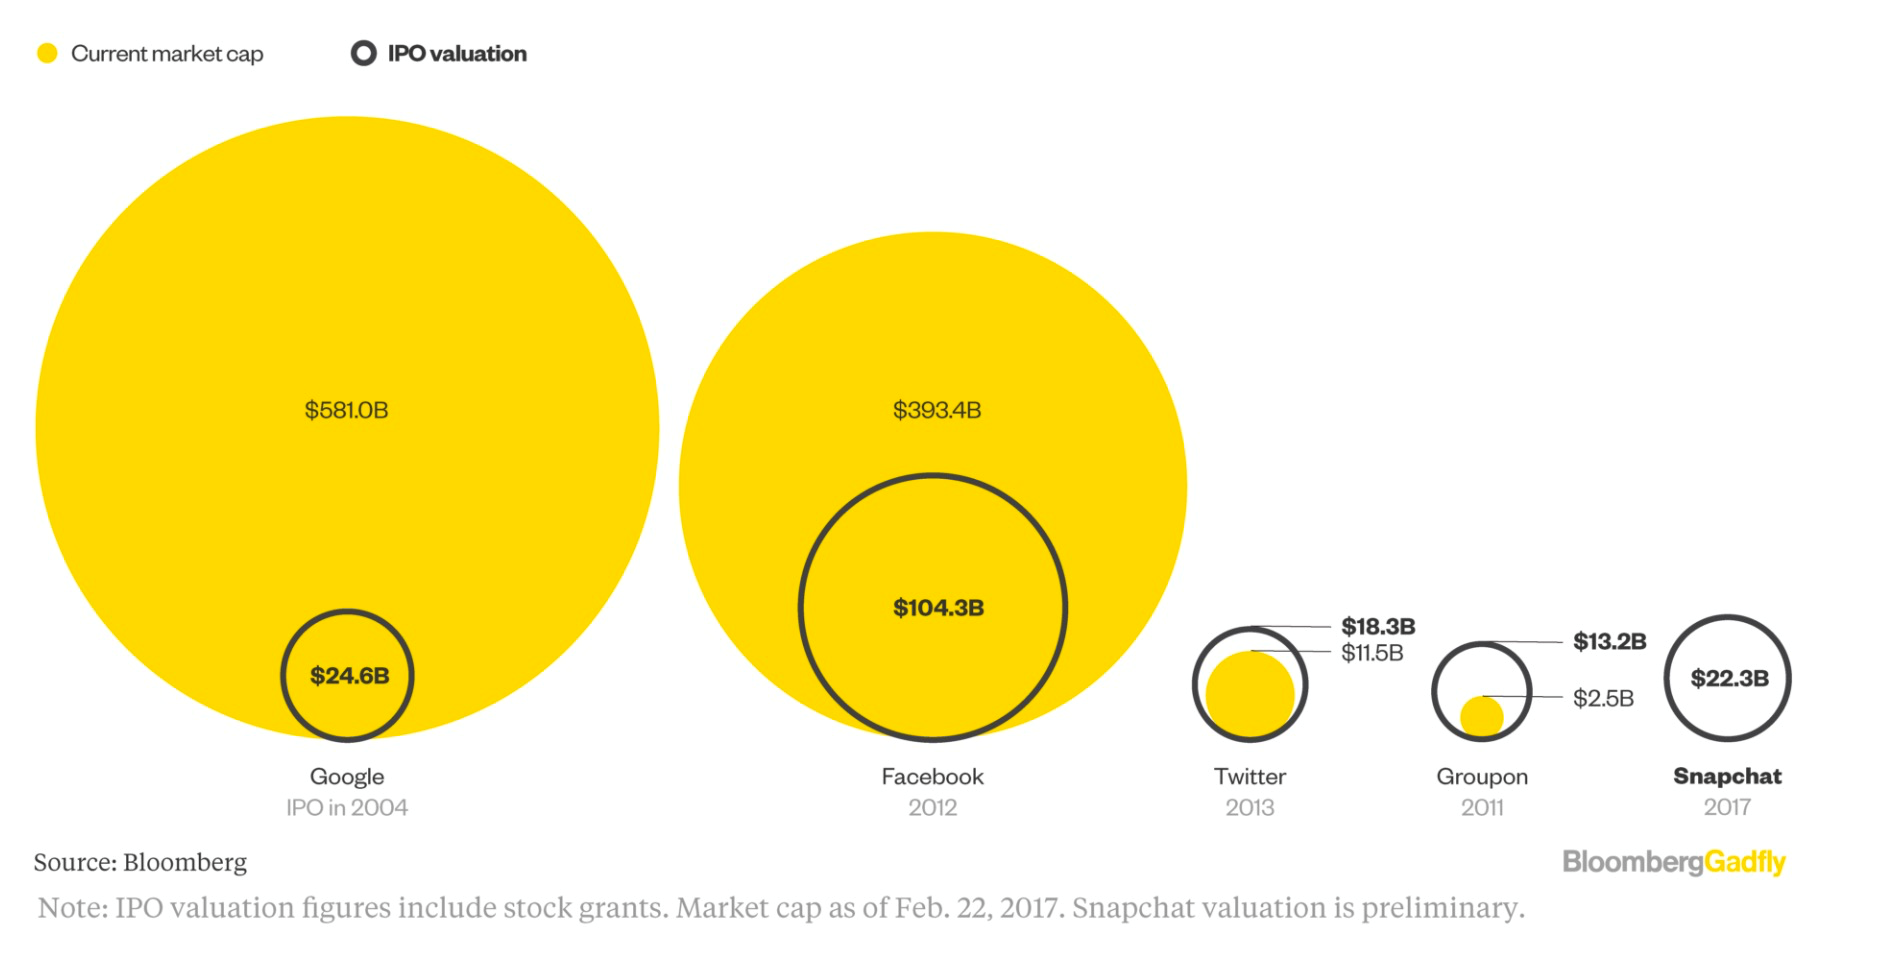 If you're an investor who follows the market closely, you might be thinking about Snap's IPO and wondering if it's a good investment.